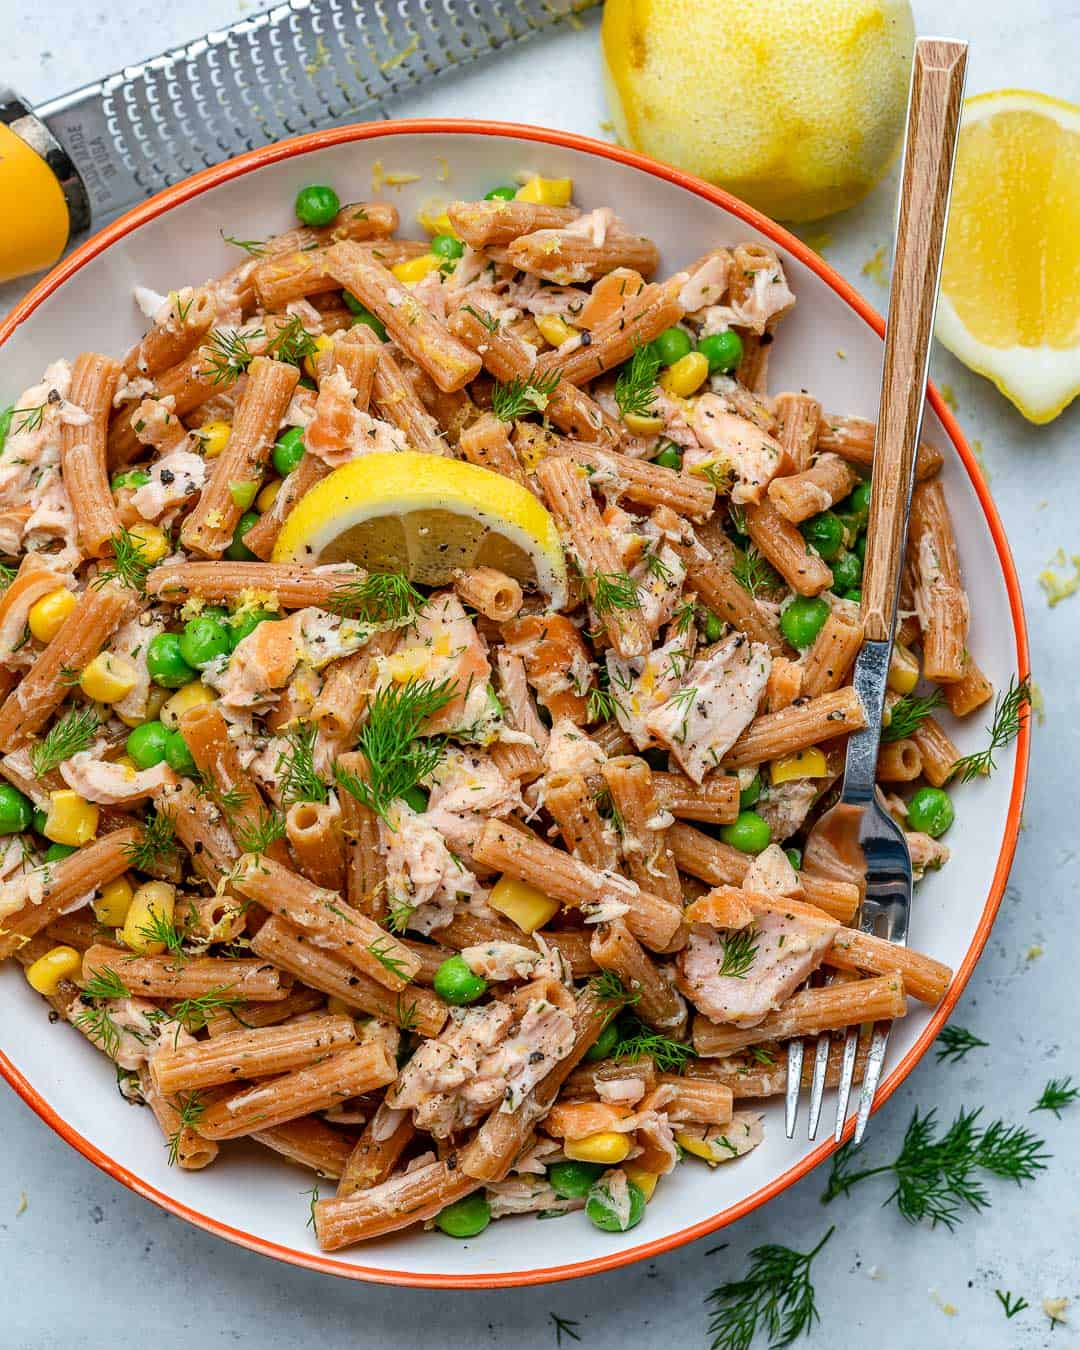 healthy pasta salad recipe with peas, corn, and salmon